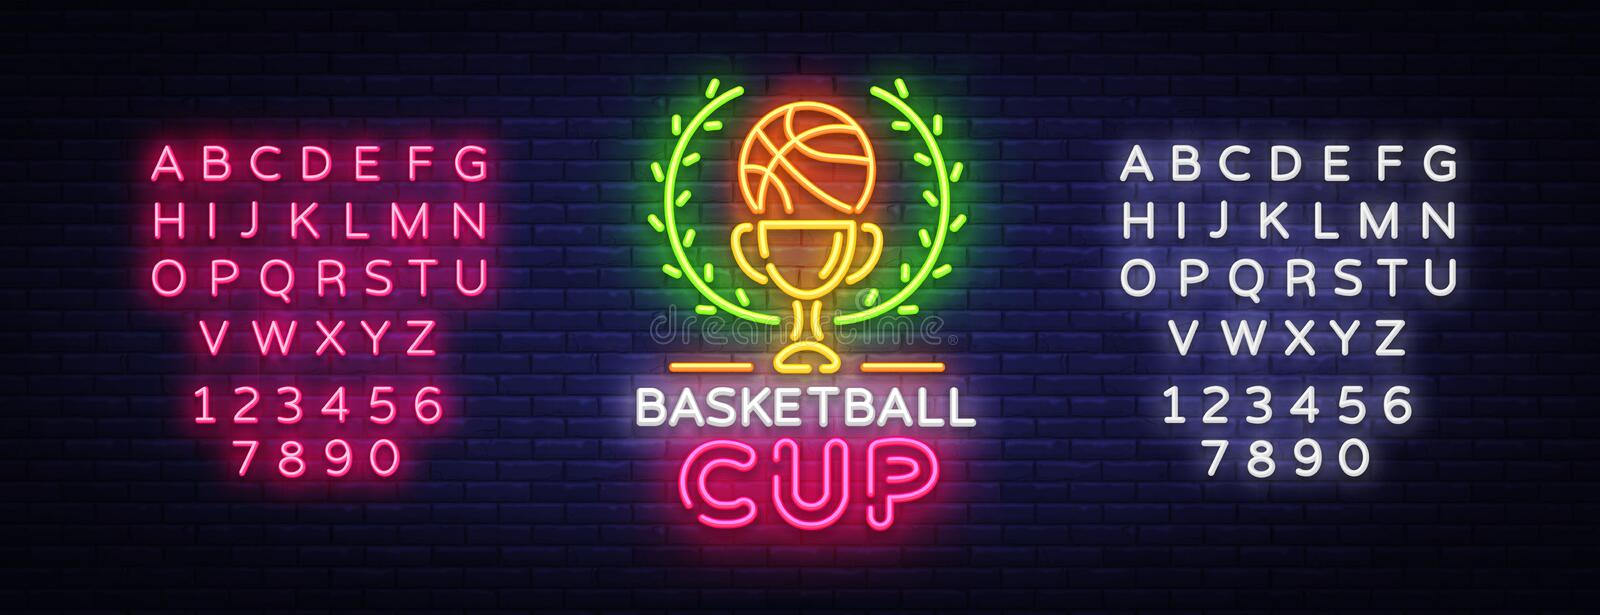 Basketball Tourament Night Neon Logo Vector. Basketball Cup neon sign, design template, modern trend design, sports neon vector illustration